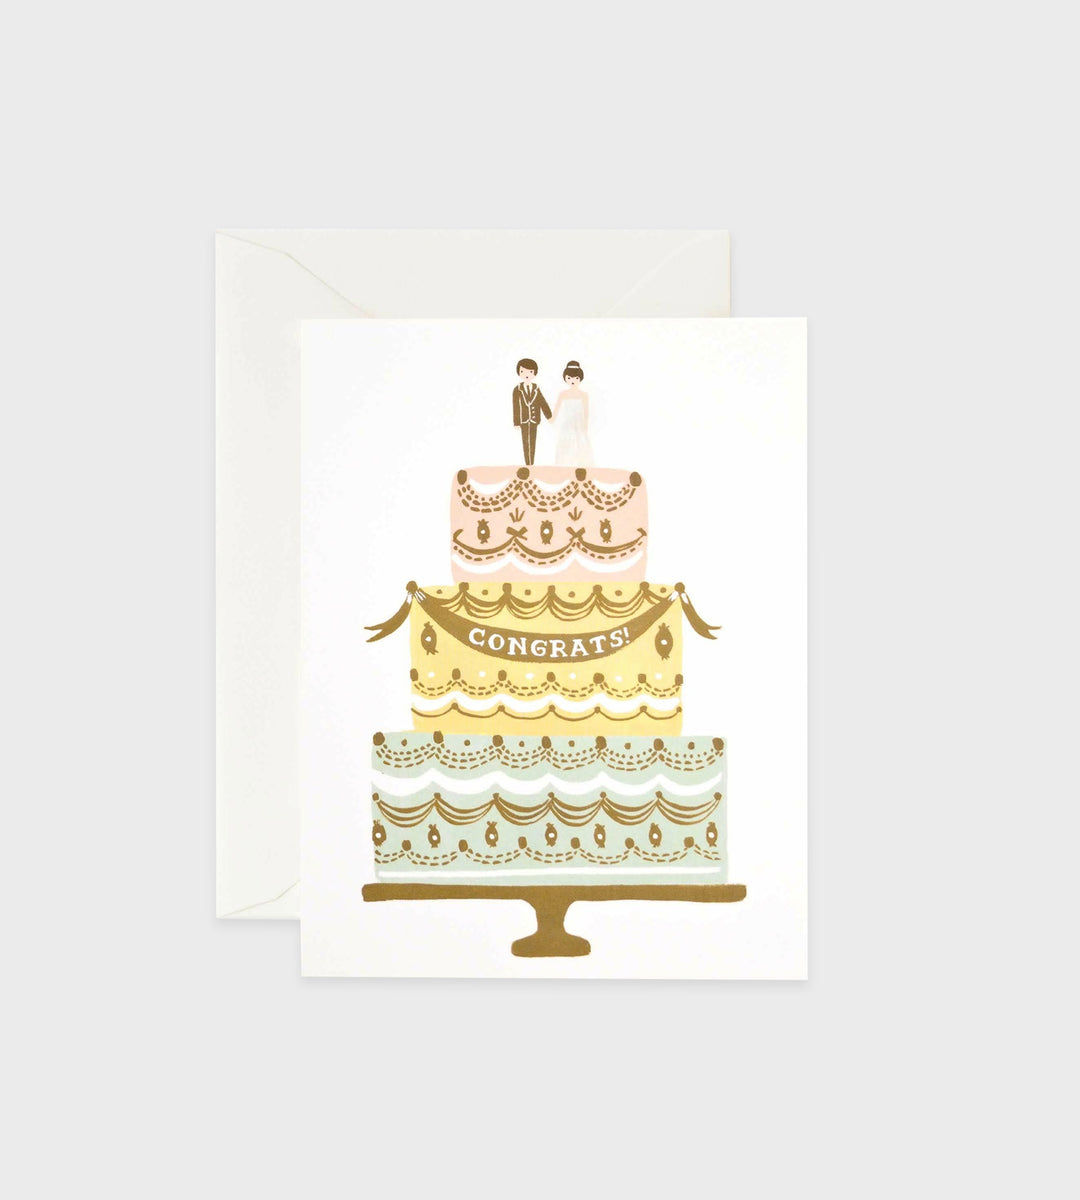 Rifle Paper Co. | Congrats Wedding Cake Card